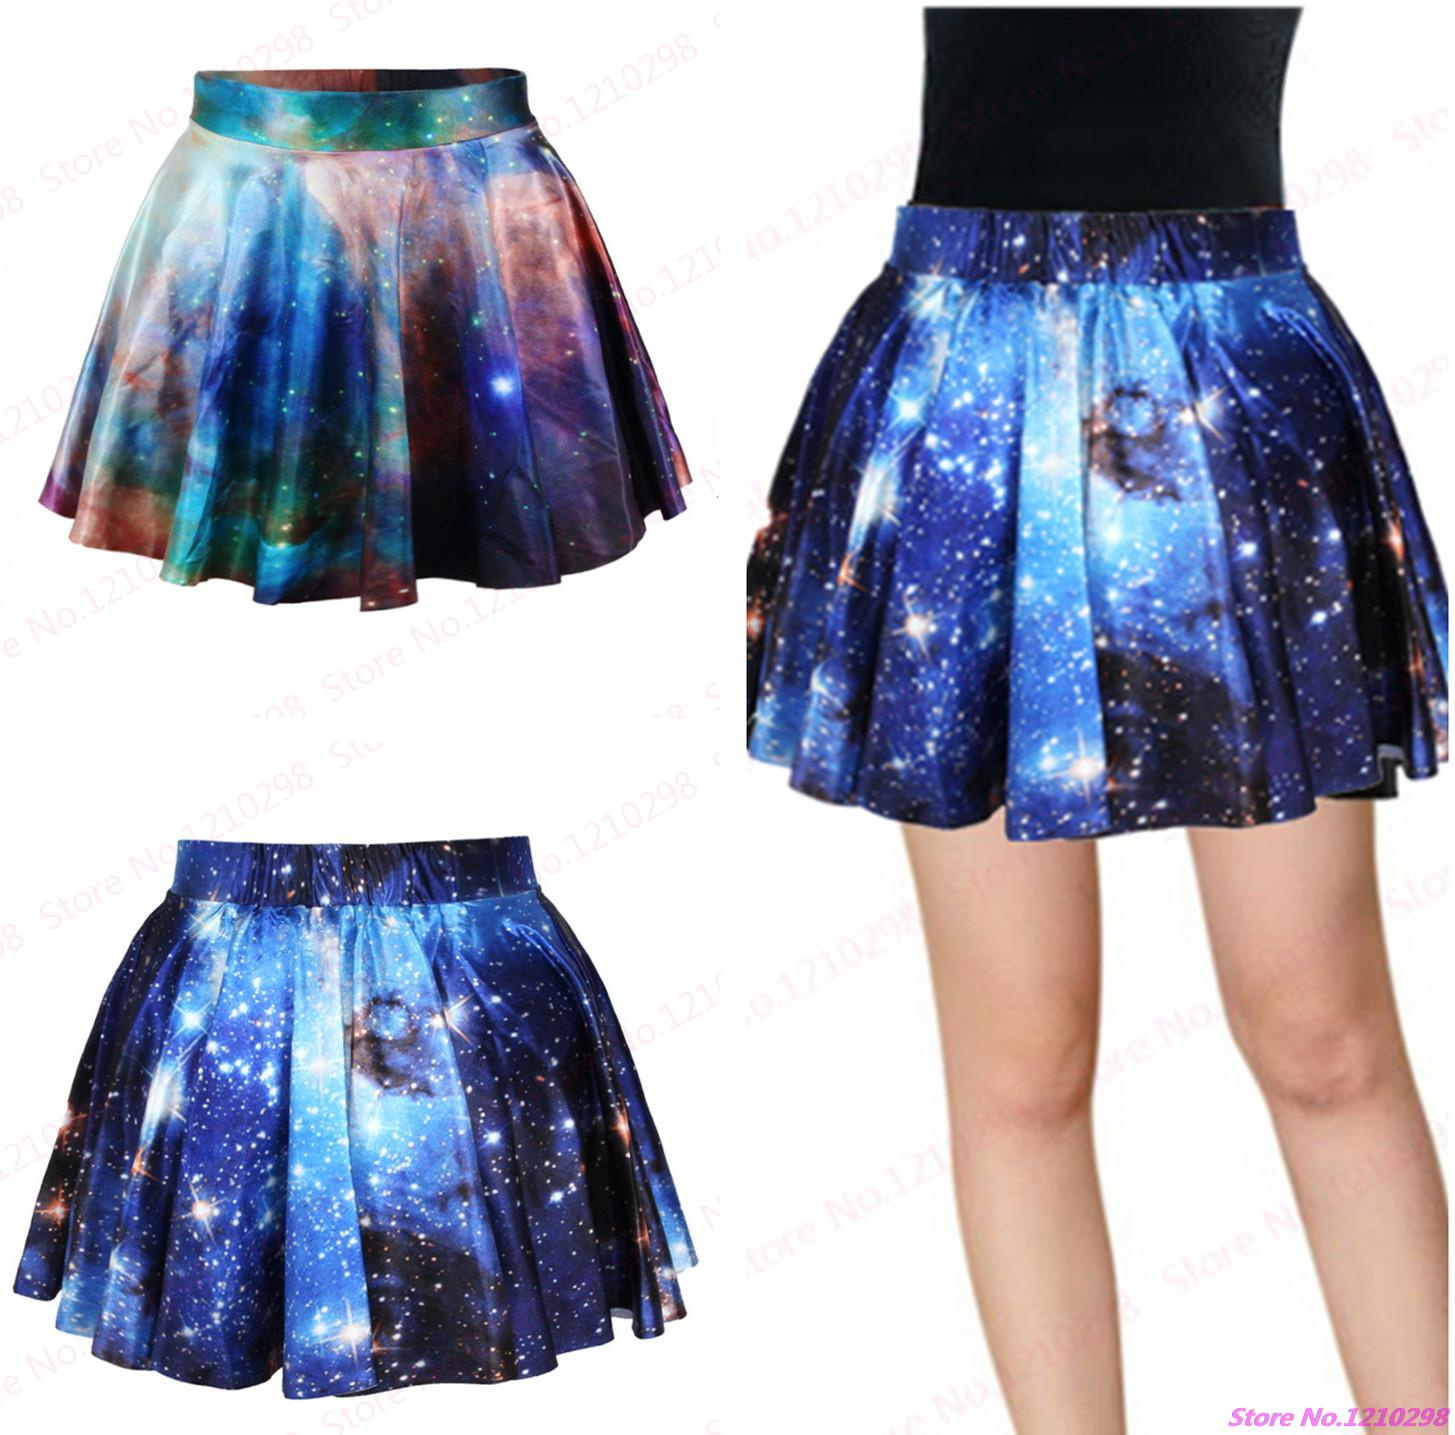 New Running Gym Skirts Pettiskirt Red Starry Pleated Mini Skirt Dance Style Blue Galaxy Tennis Mini